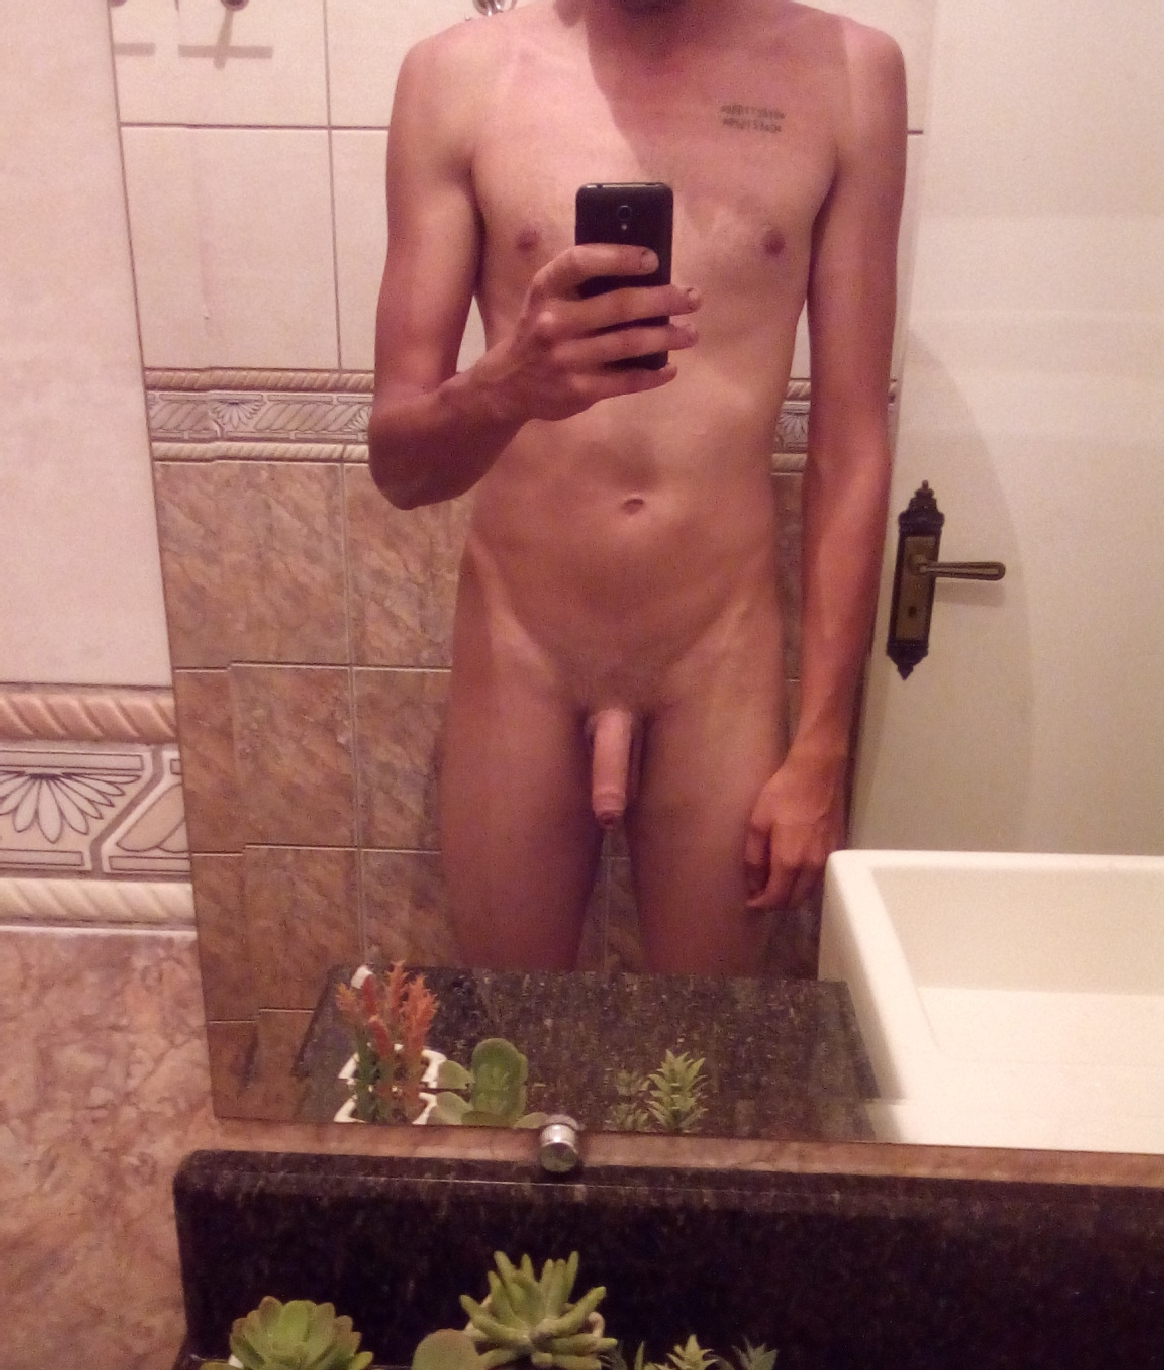 Boy With A Good Looking Soft Uncut Cock